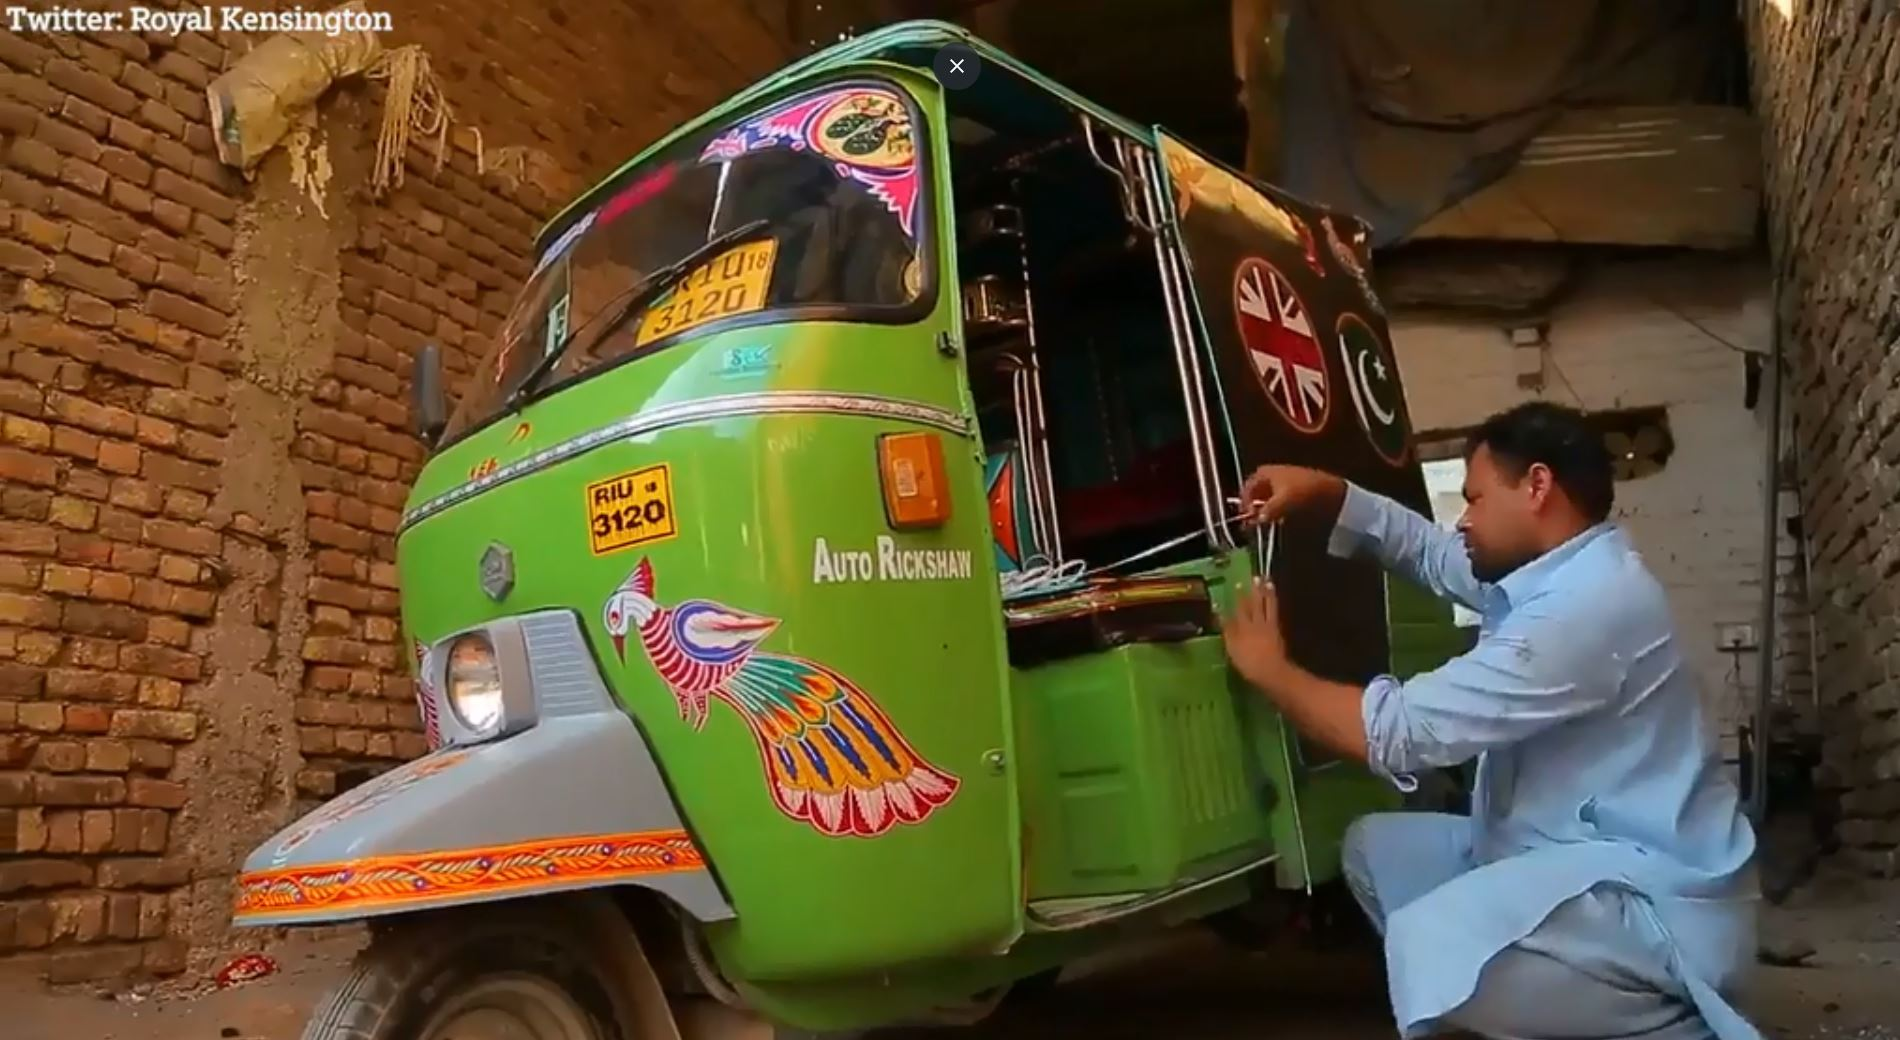 Pakistan's iconic rickshaws have been decorated with the Union Jack and Pakistani flag to celebrate the visit